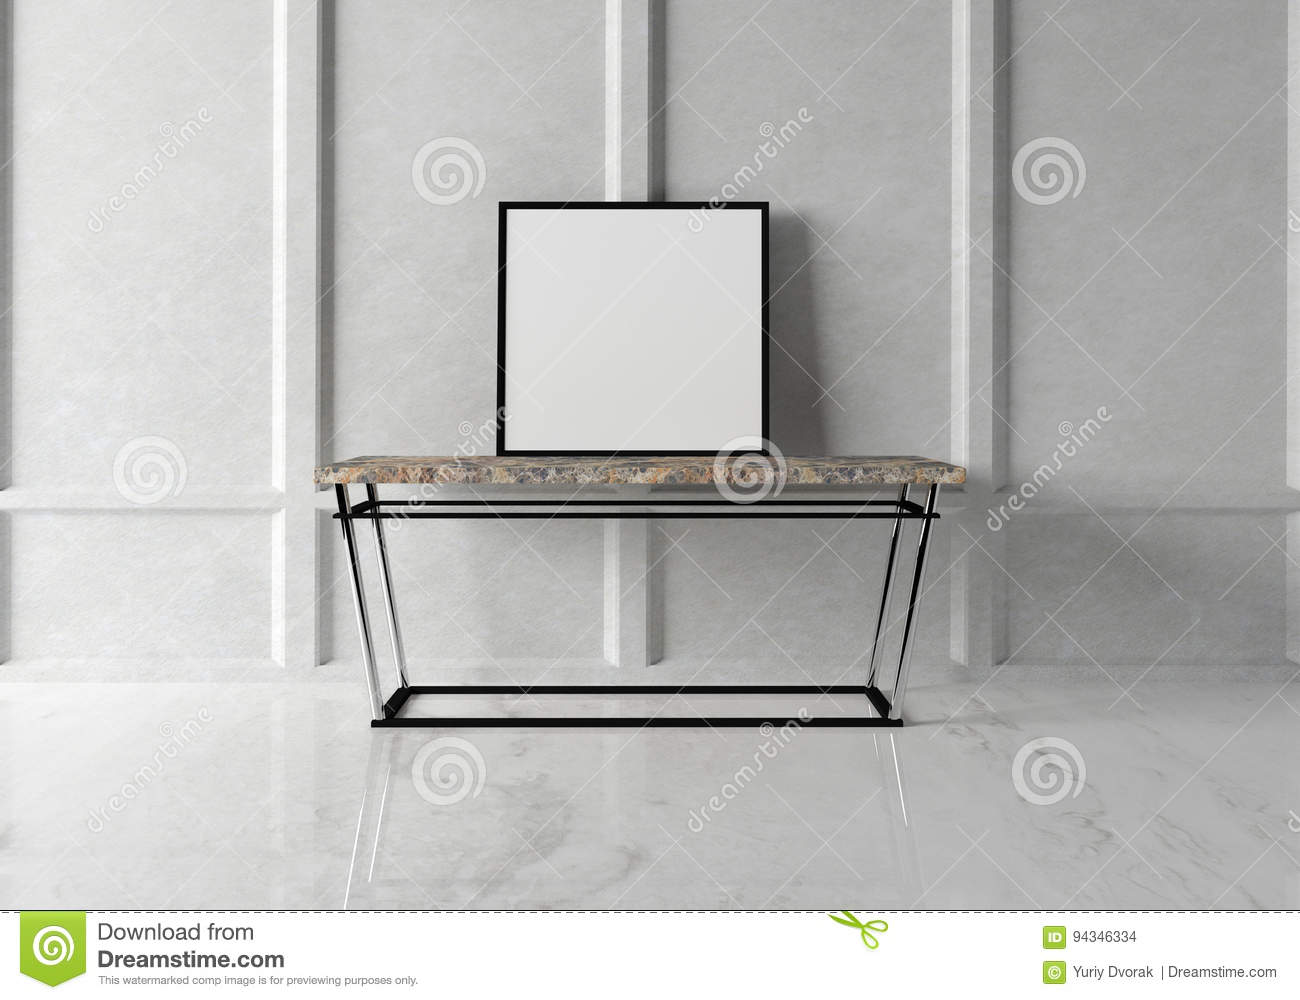 Mock up poster in the modern interior with a console marble table. 3D rendering